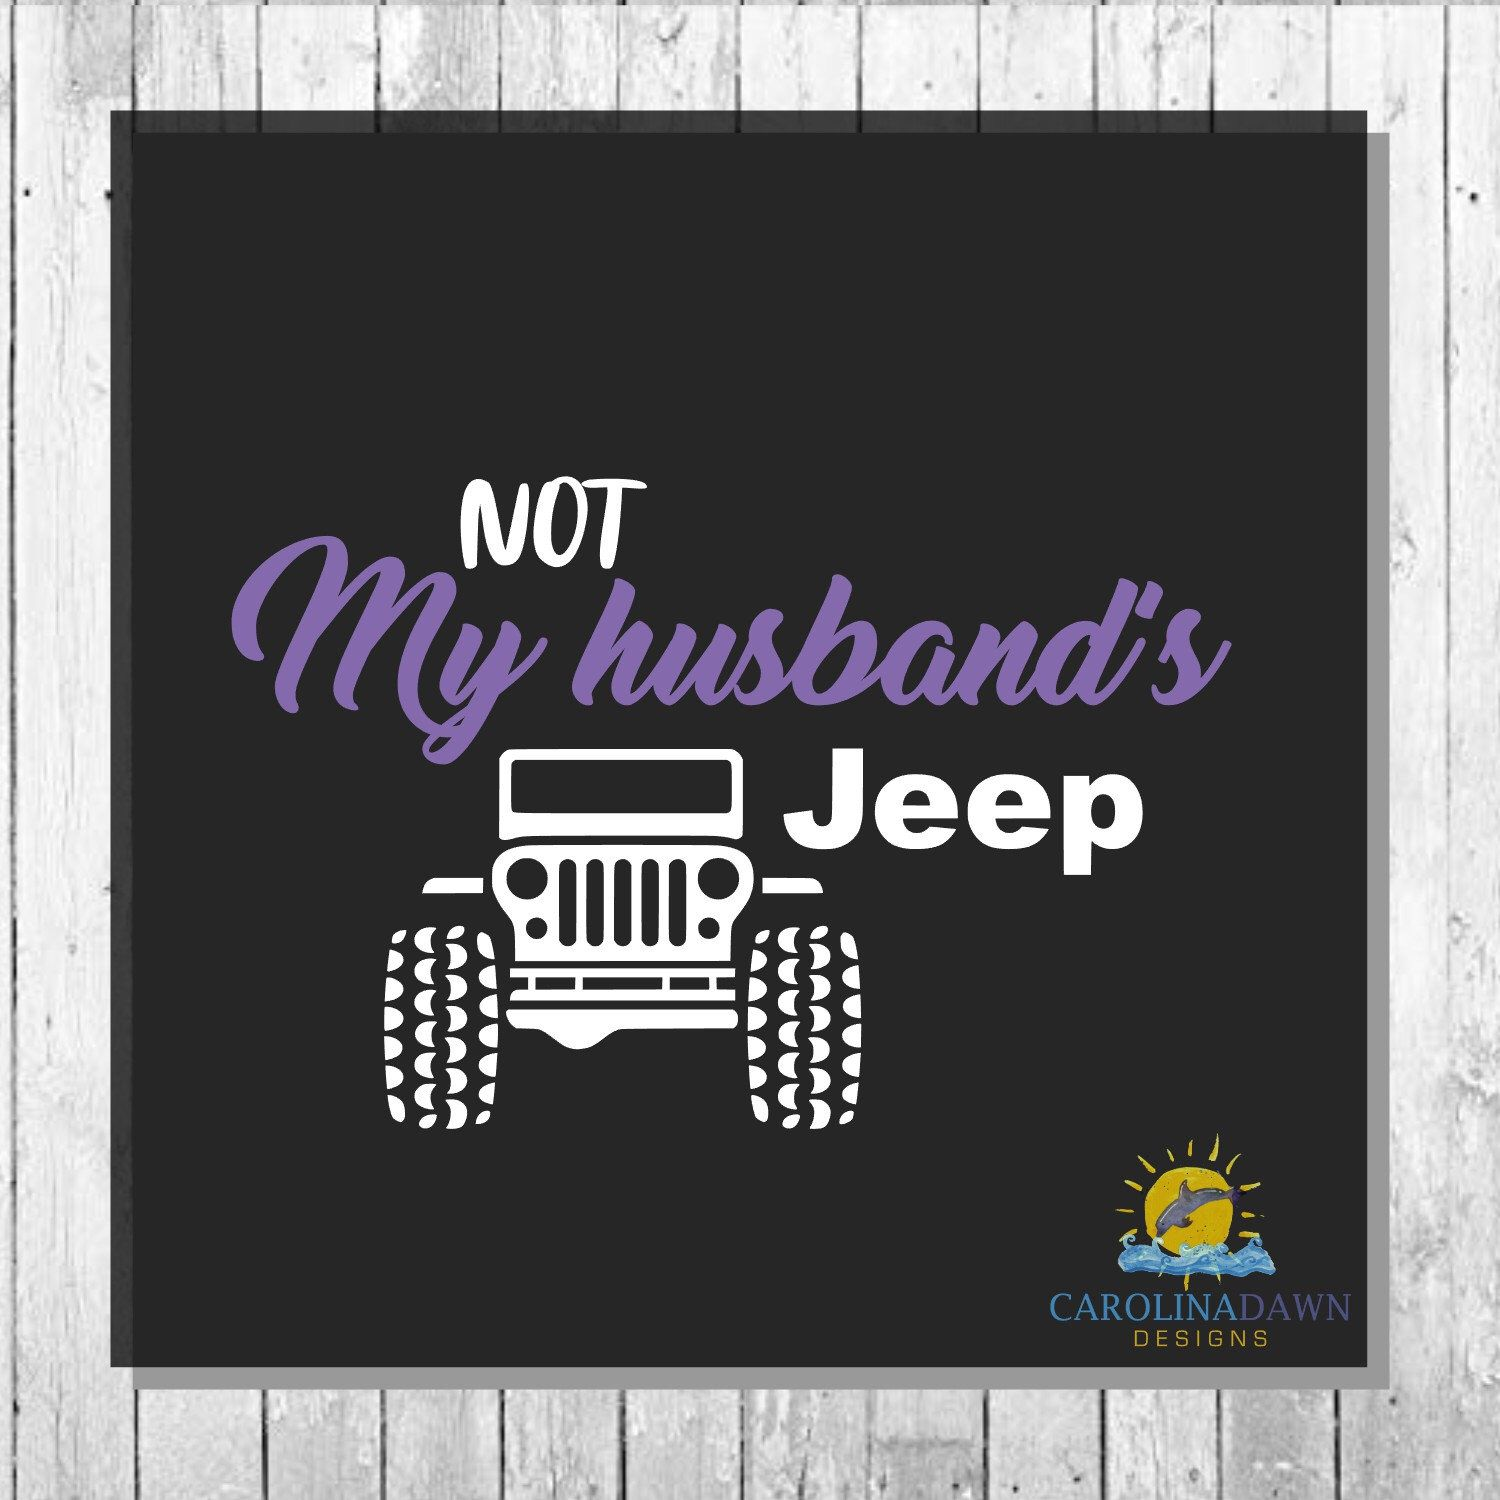 Excited to share this item from my etsy shop not my husbands jeep jeep decal spouse decal slot funny jeep jeep family